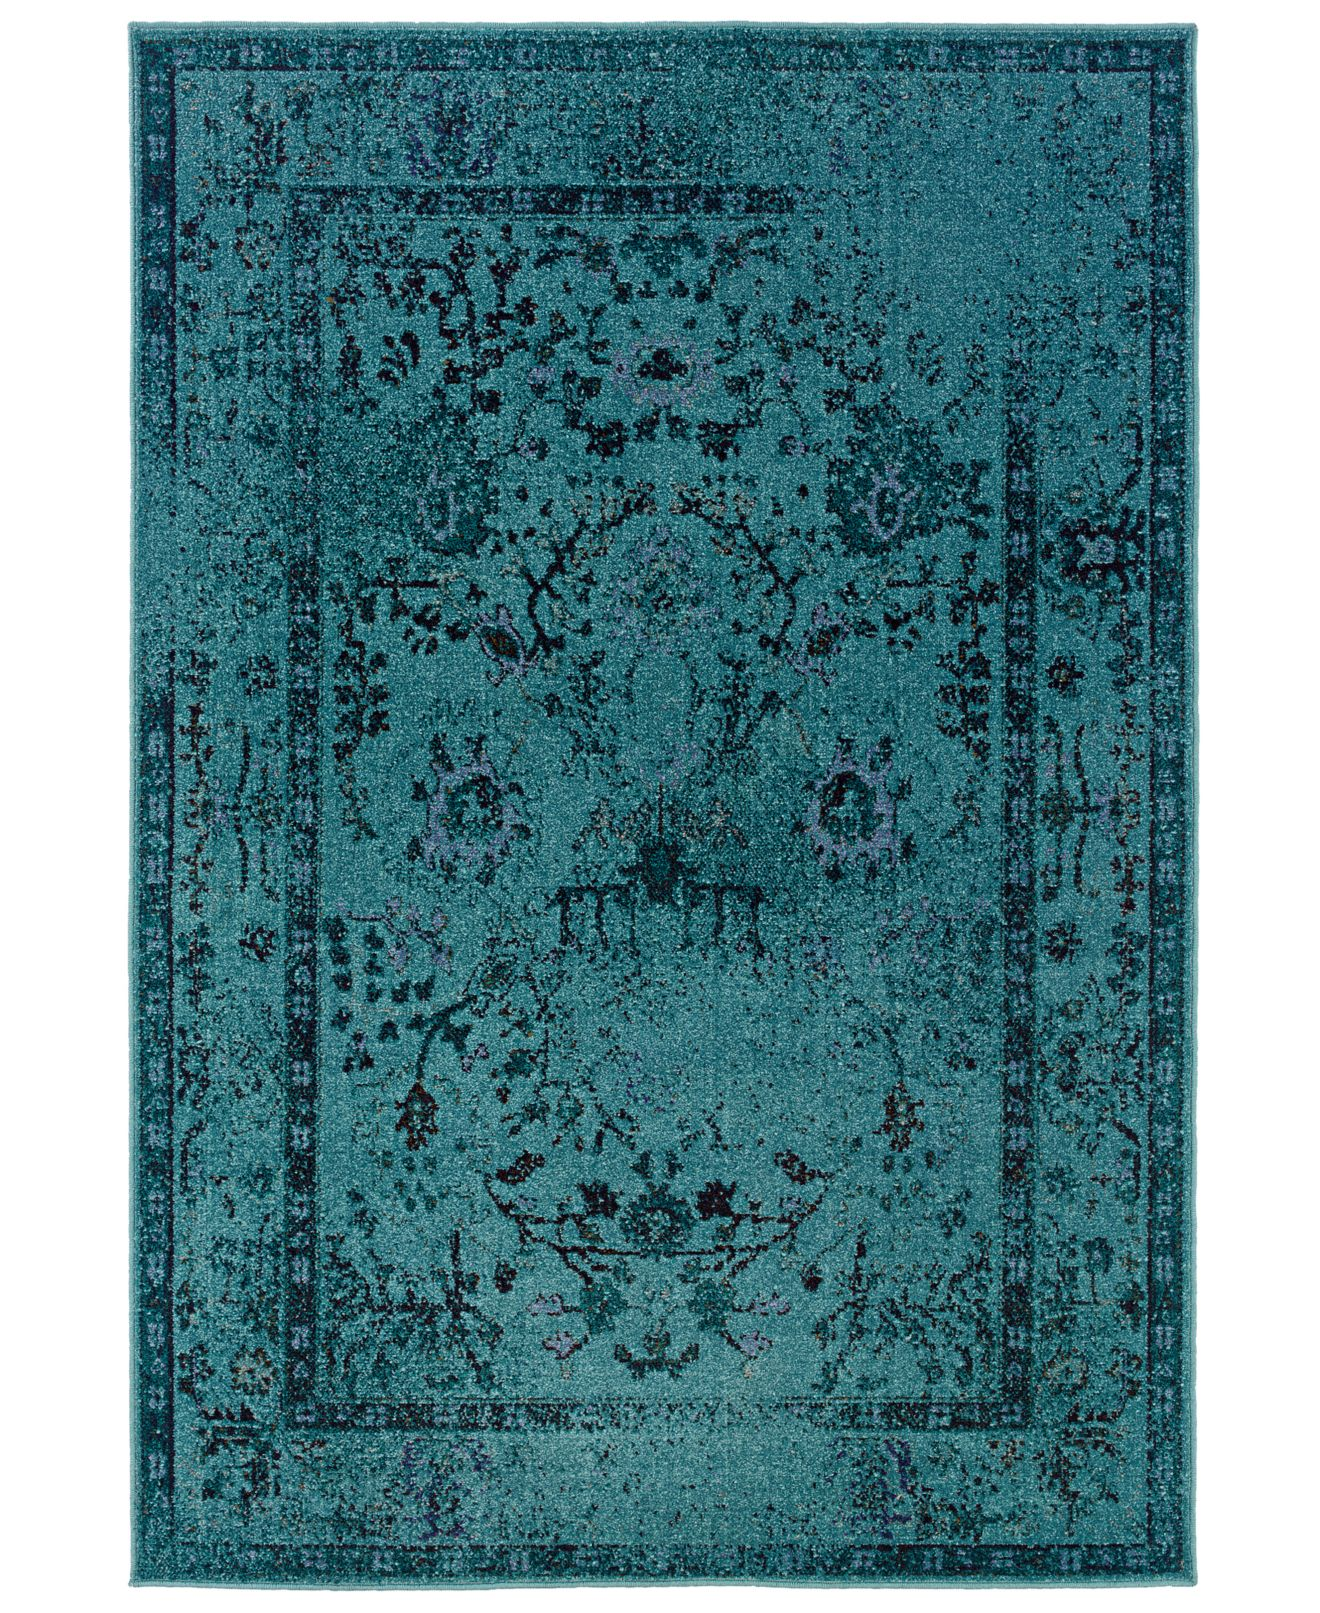 28 Teal Colored Rugs Stormy Skies Teal Abstract Area Rugs